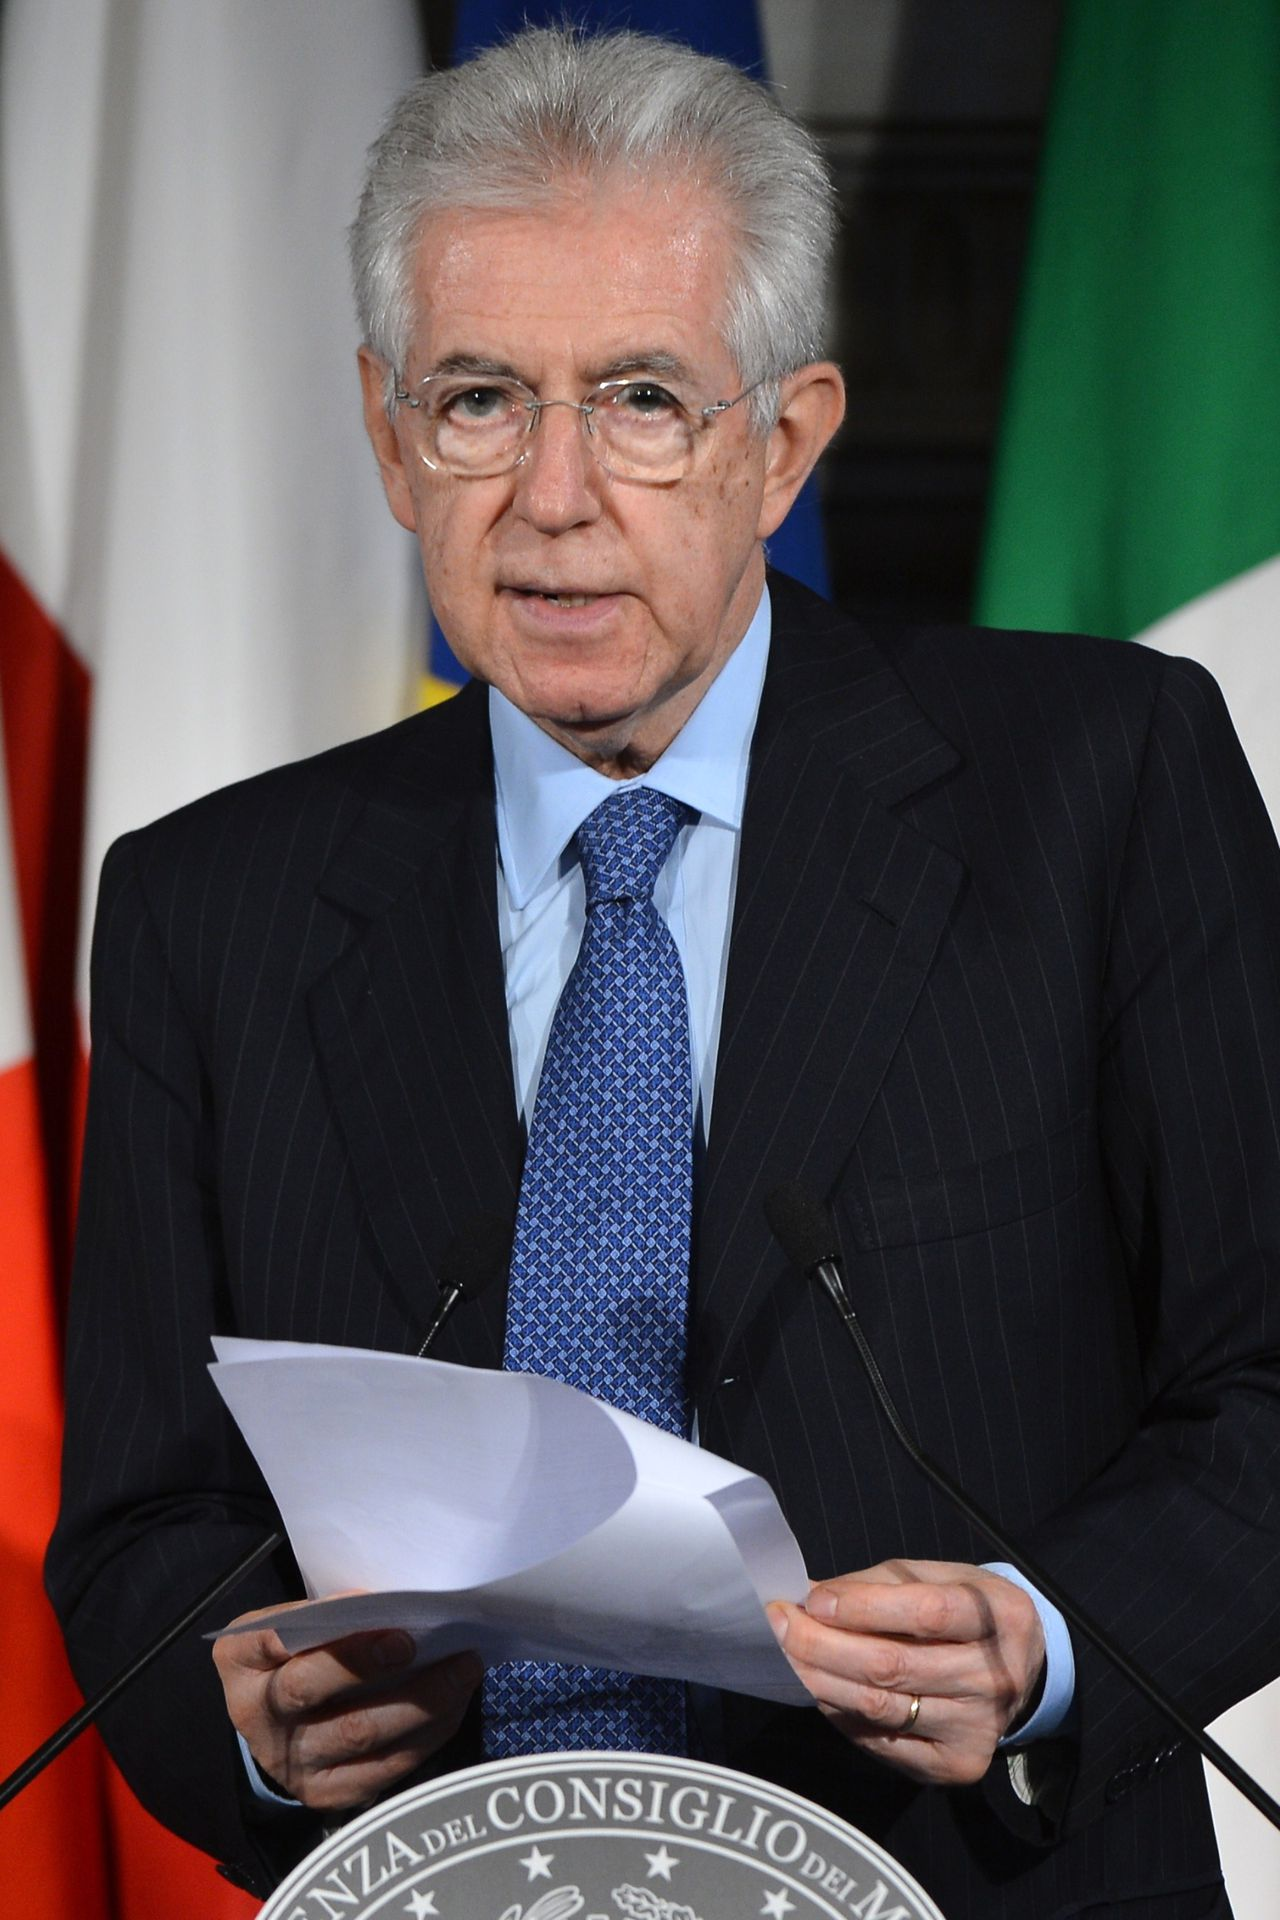 Italian Prime Minister Mario monti speaks during a press conference with his polish counterpart after an Italy-Poland summit on May 29, 2012 at Villa Madama in Rome. AFP PHOTO / ANDREAS SOLARO